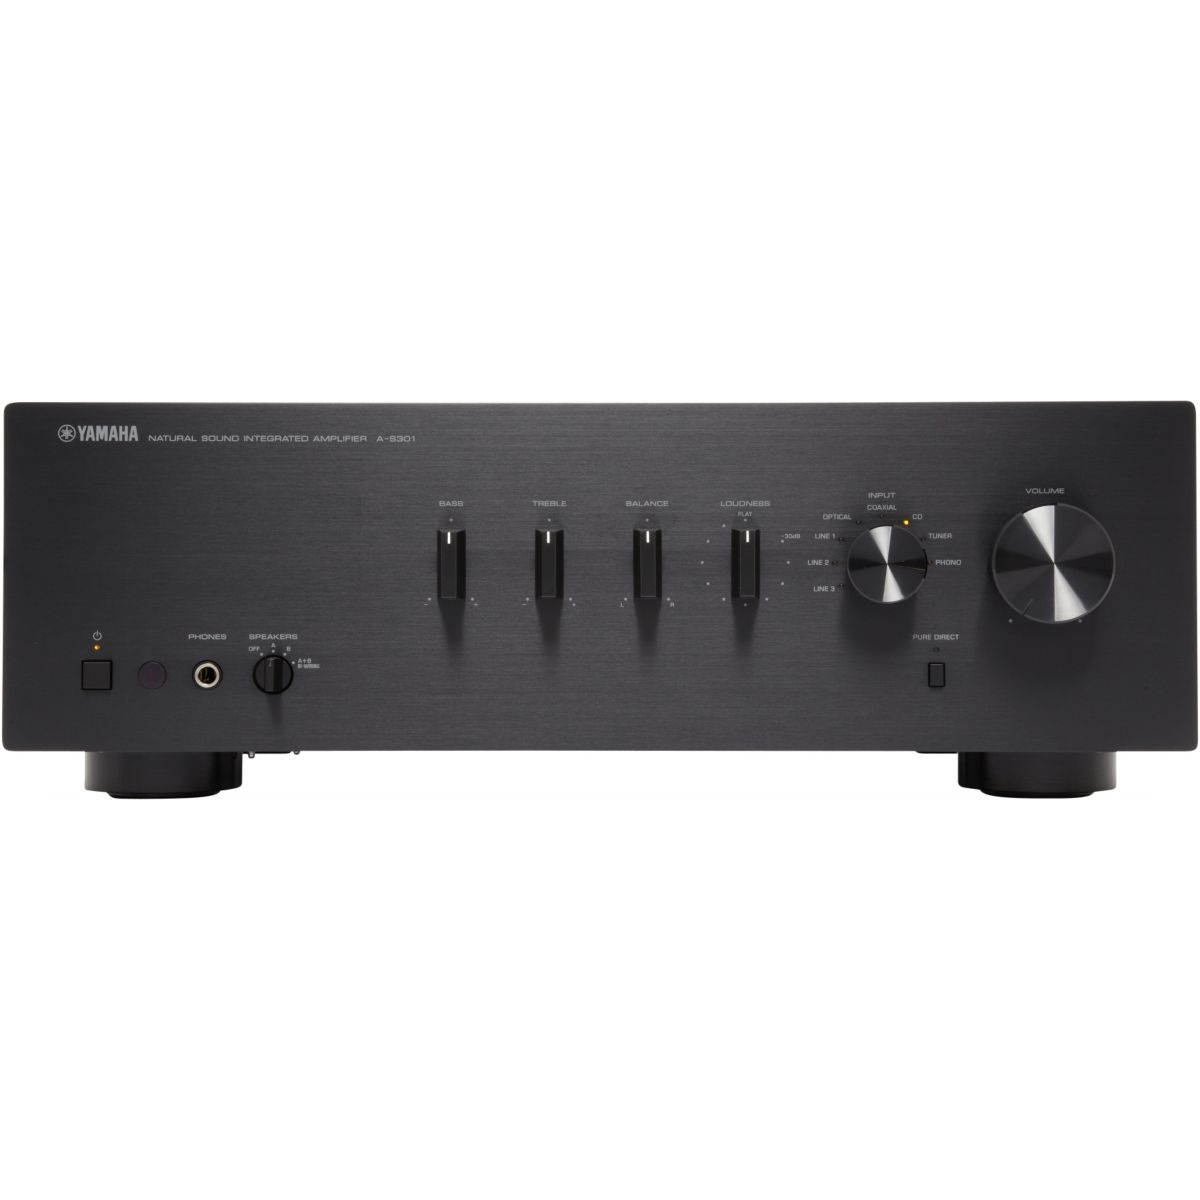 Amplificateur Hi-Fi YAMAHA AS301 NOIR